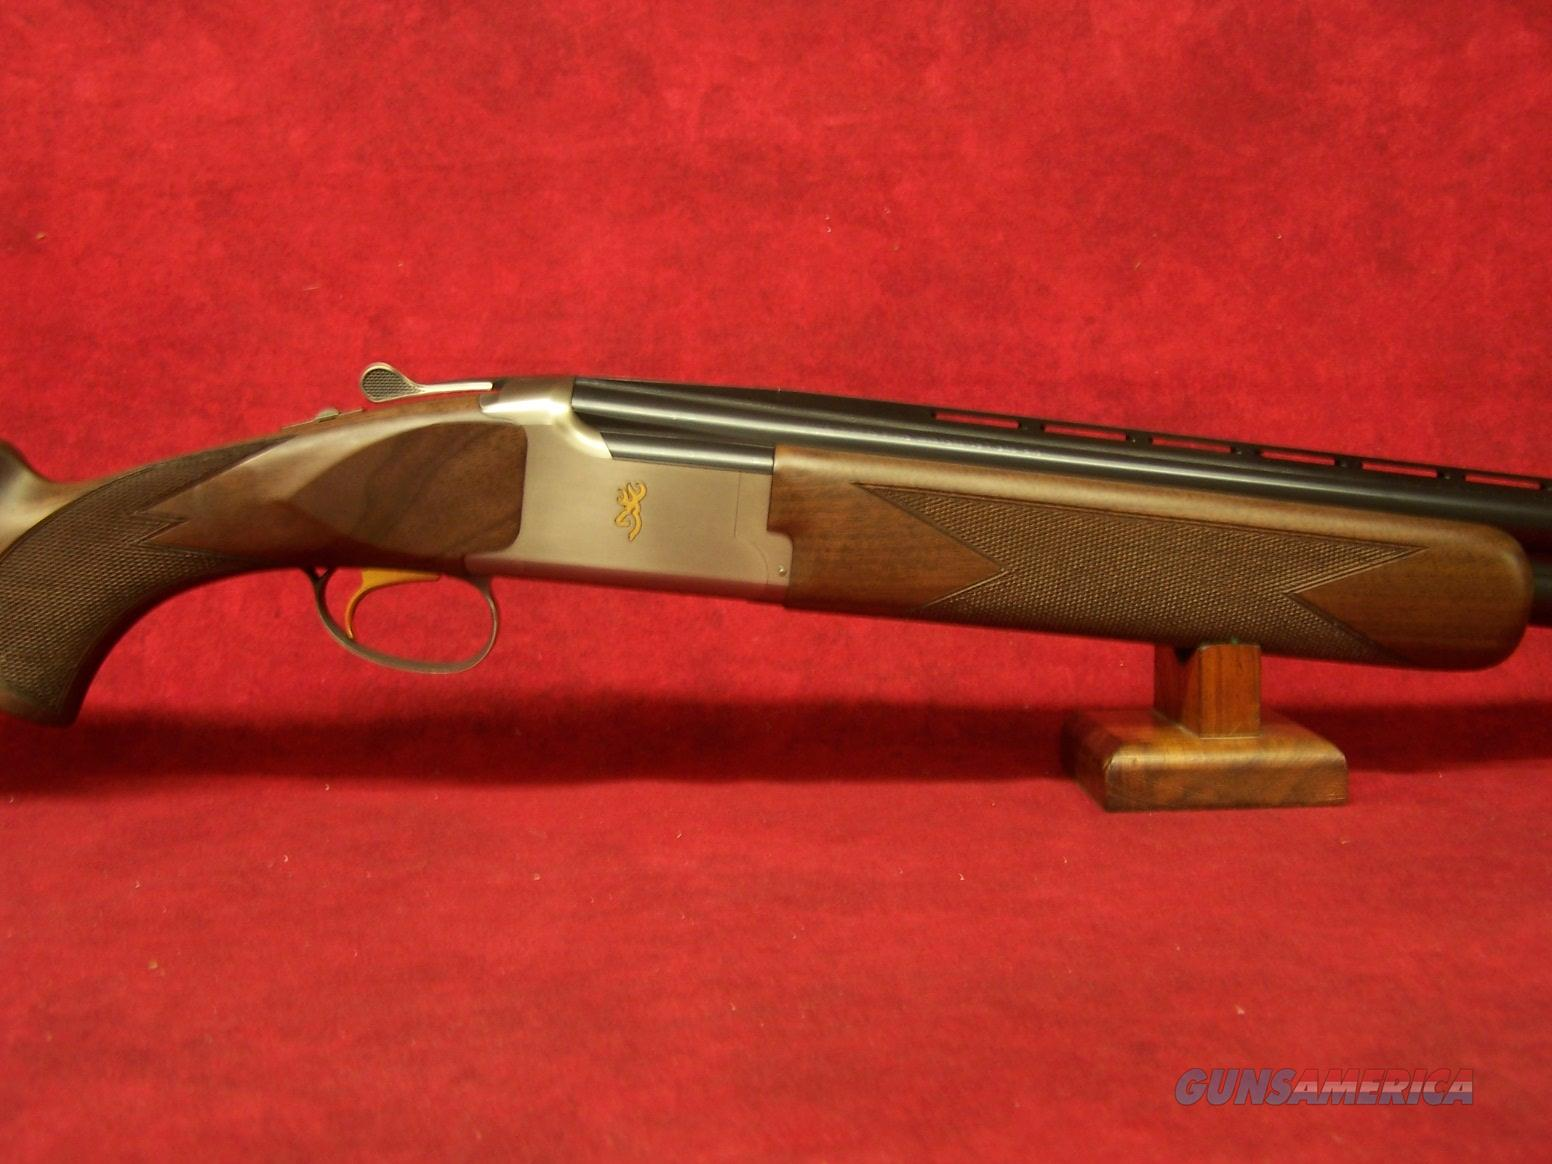 "Browning Citori White Satin Hunter 12ga 3.5"" Chamber 28"" Barrel (018161204)  Guns > Shotguns > Browning Shotguns > Over Unders > Citori > Hunting"